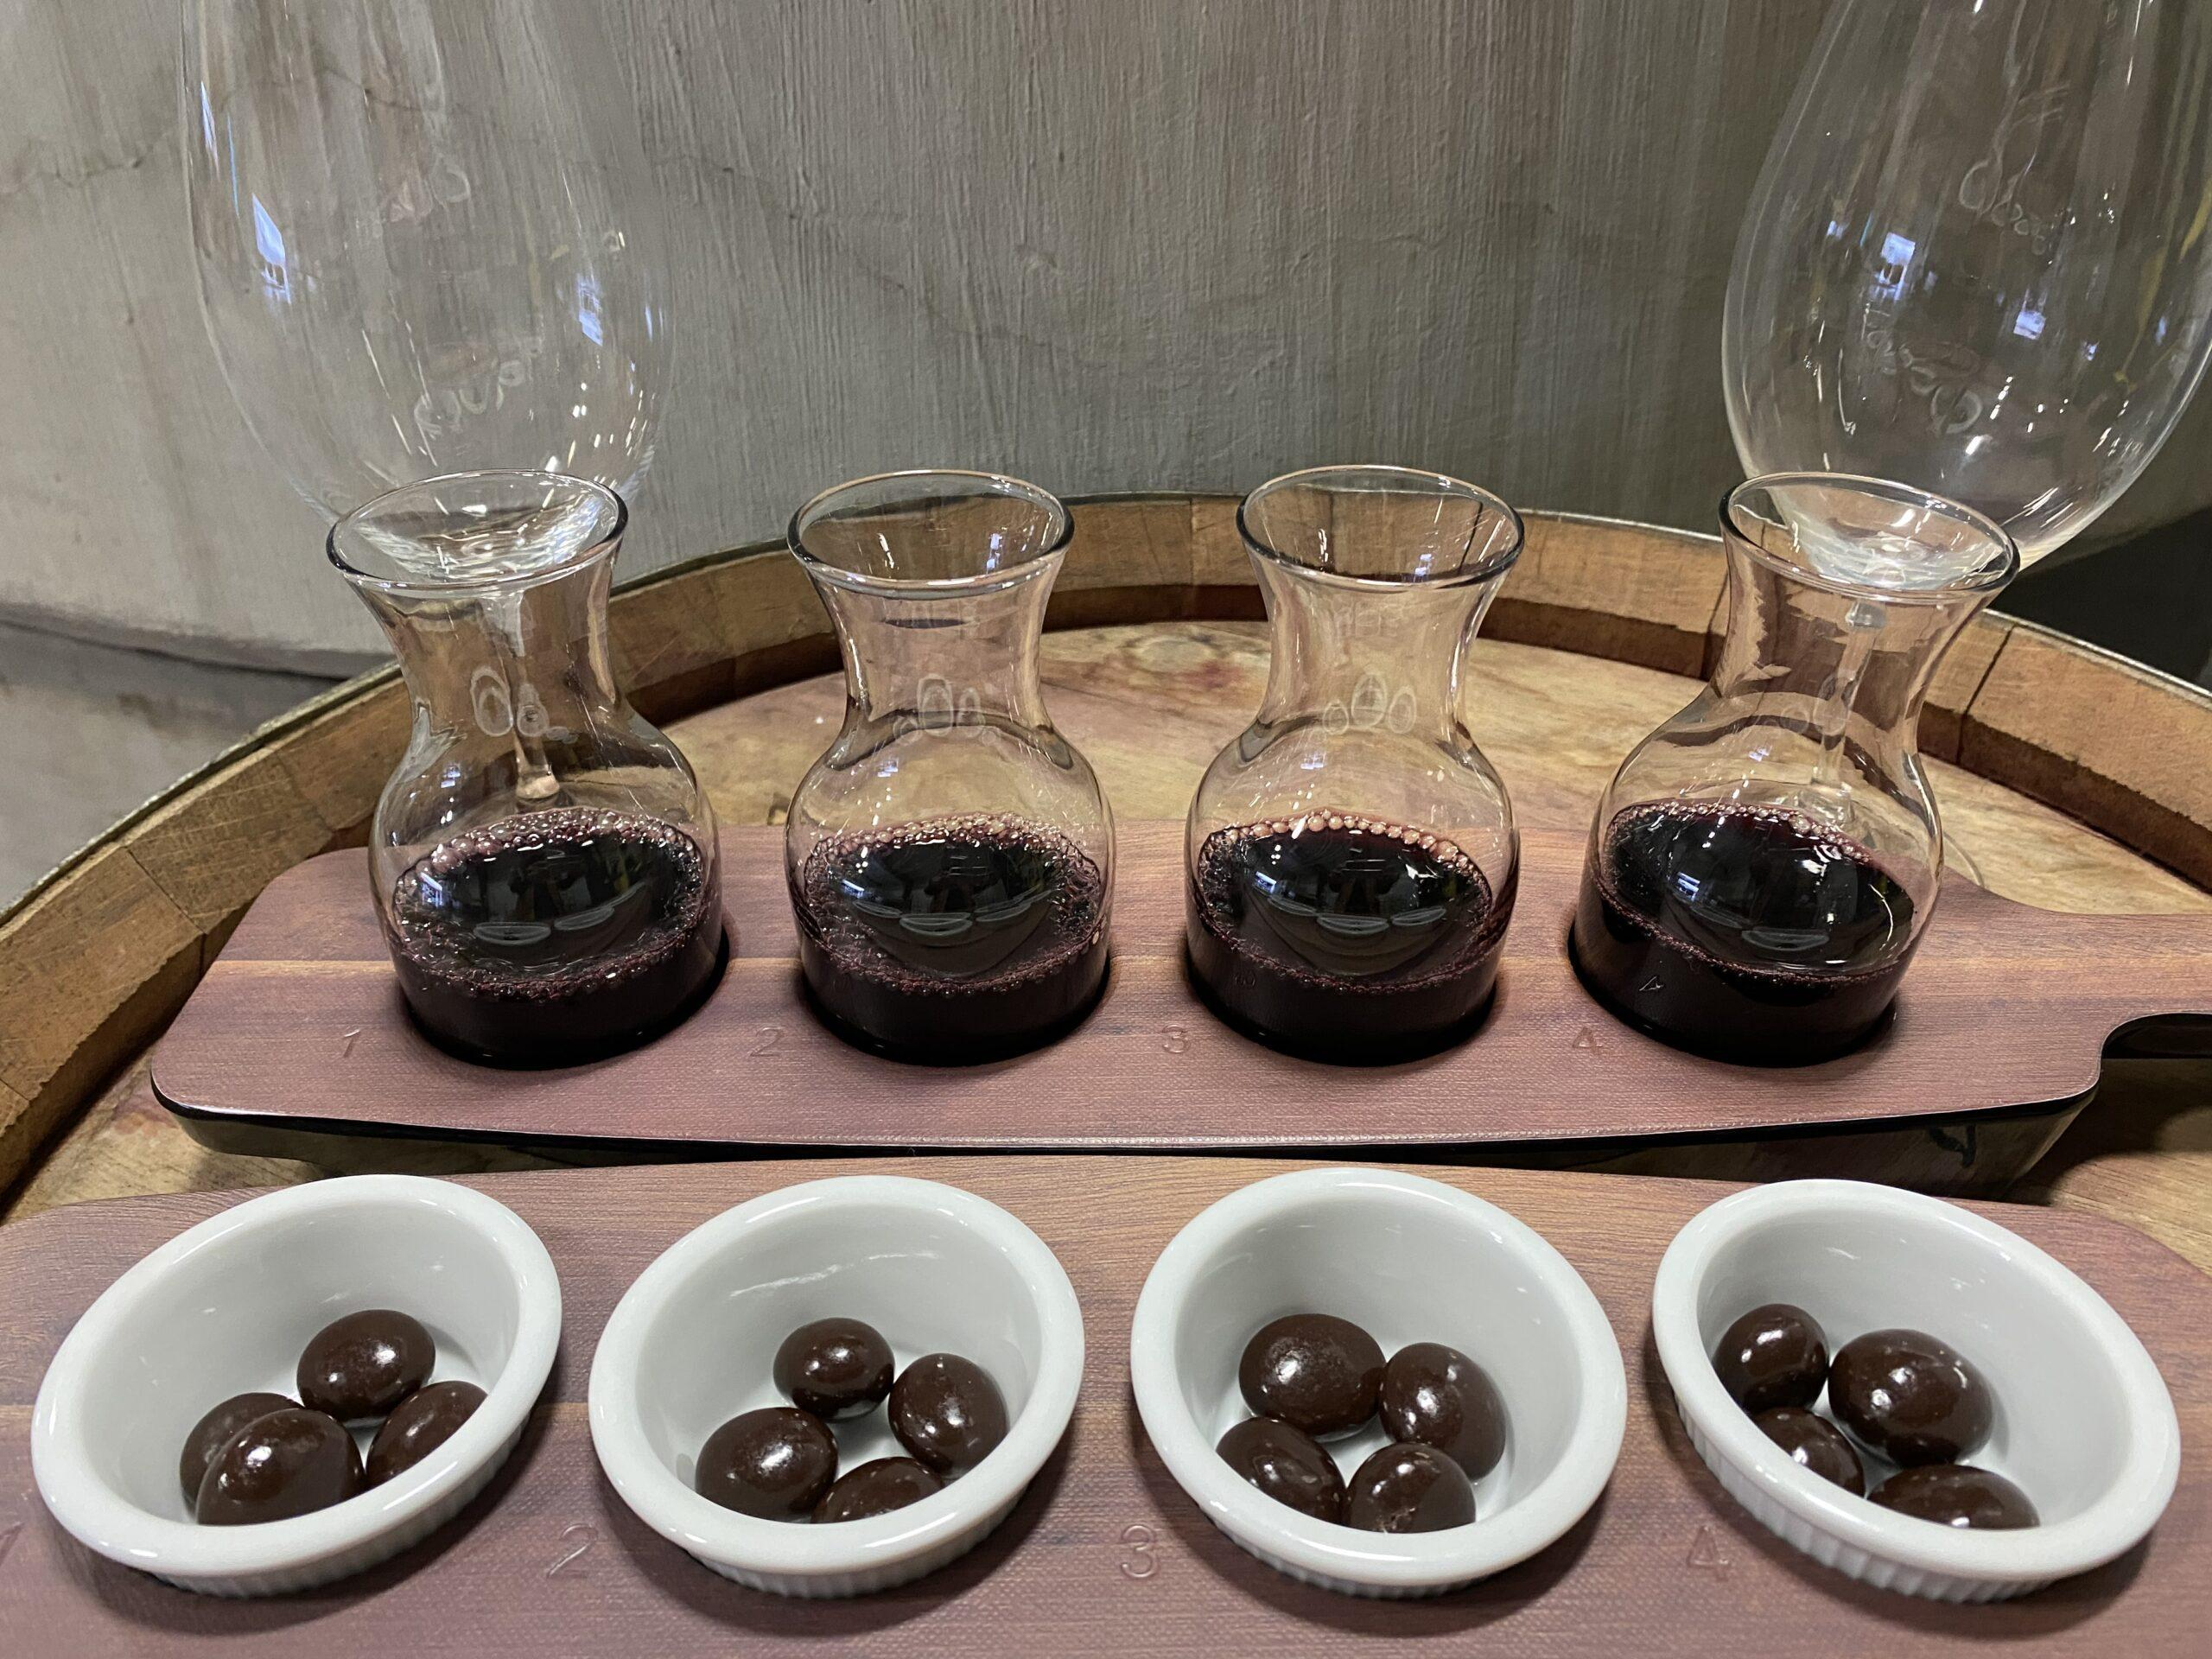 WineChocolate flight scaled - Wine and Chocolate Flights at Purple Star Winery